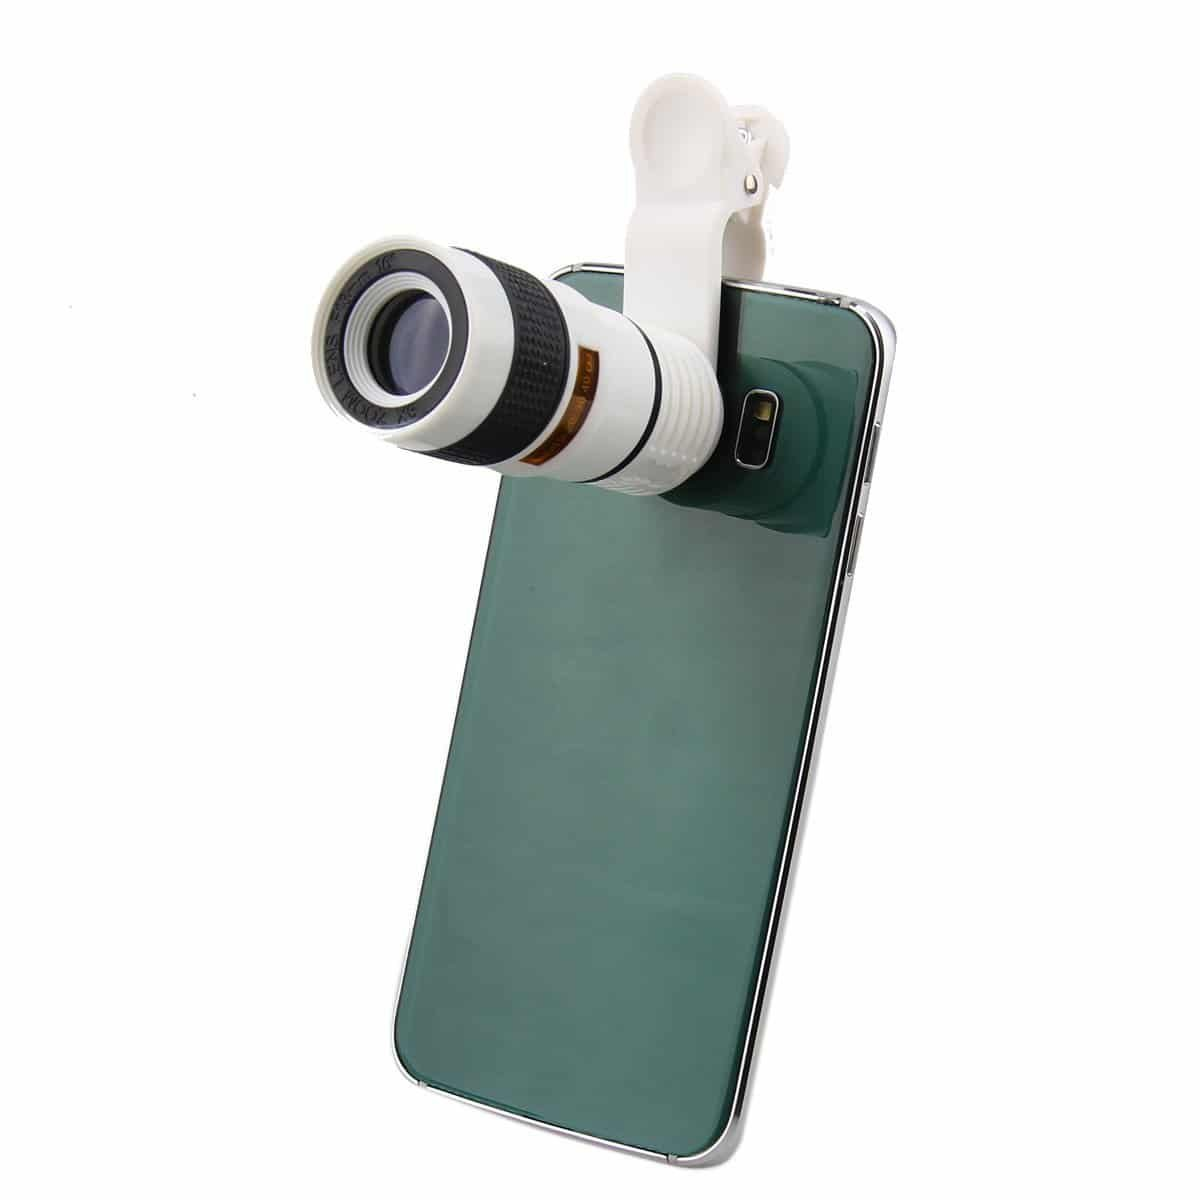 ONX3 Acer One 10 10.1'' (White 8x Zoom) Universal Clip-on 8x Zoom Optical Telescope Manual Focus Phone Camera Lens by ONX3® (Image #3)